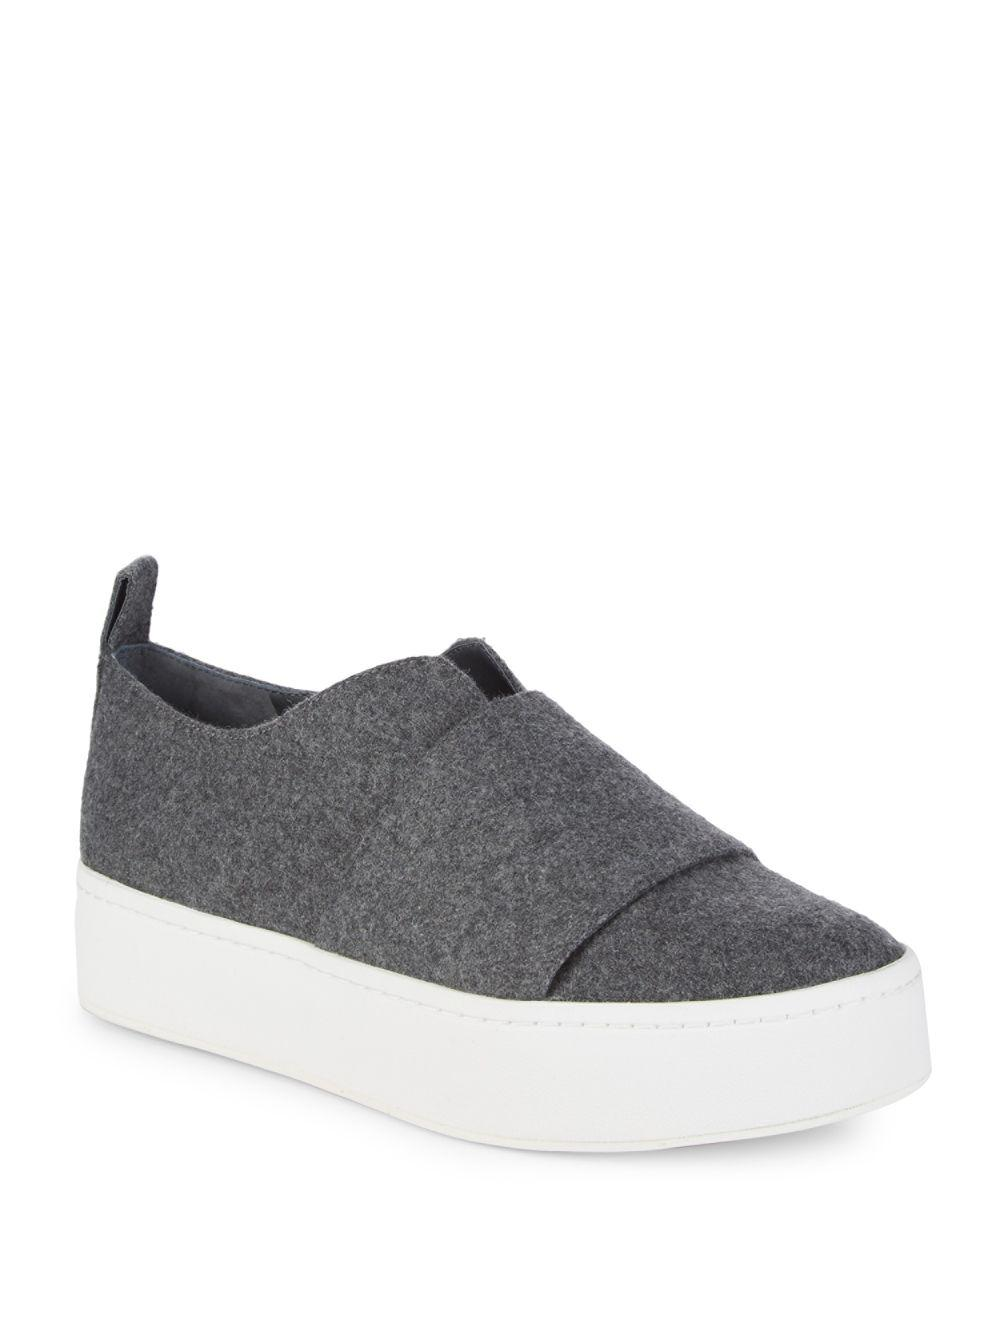 15a6c3bc25e8 Lyst - Vince Wallace Platform Sneakers in Gray - Save 21%